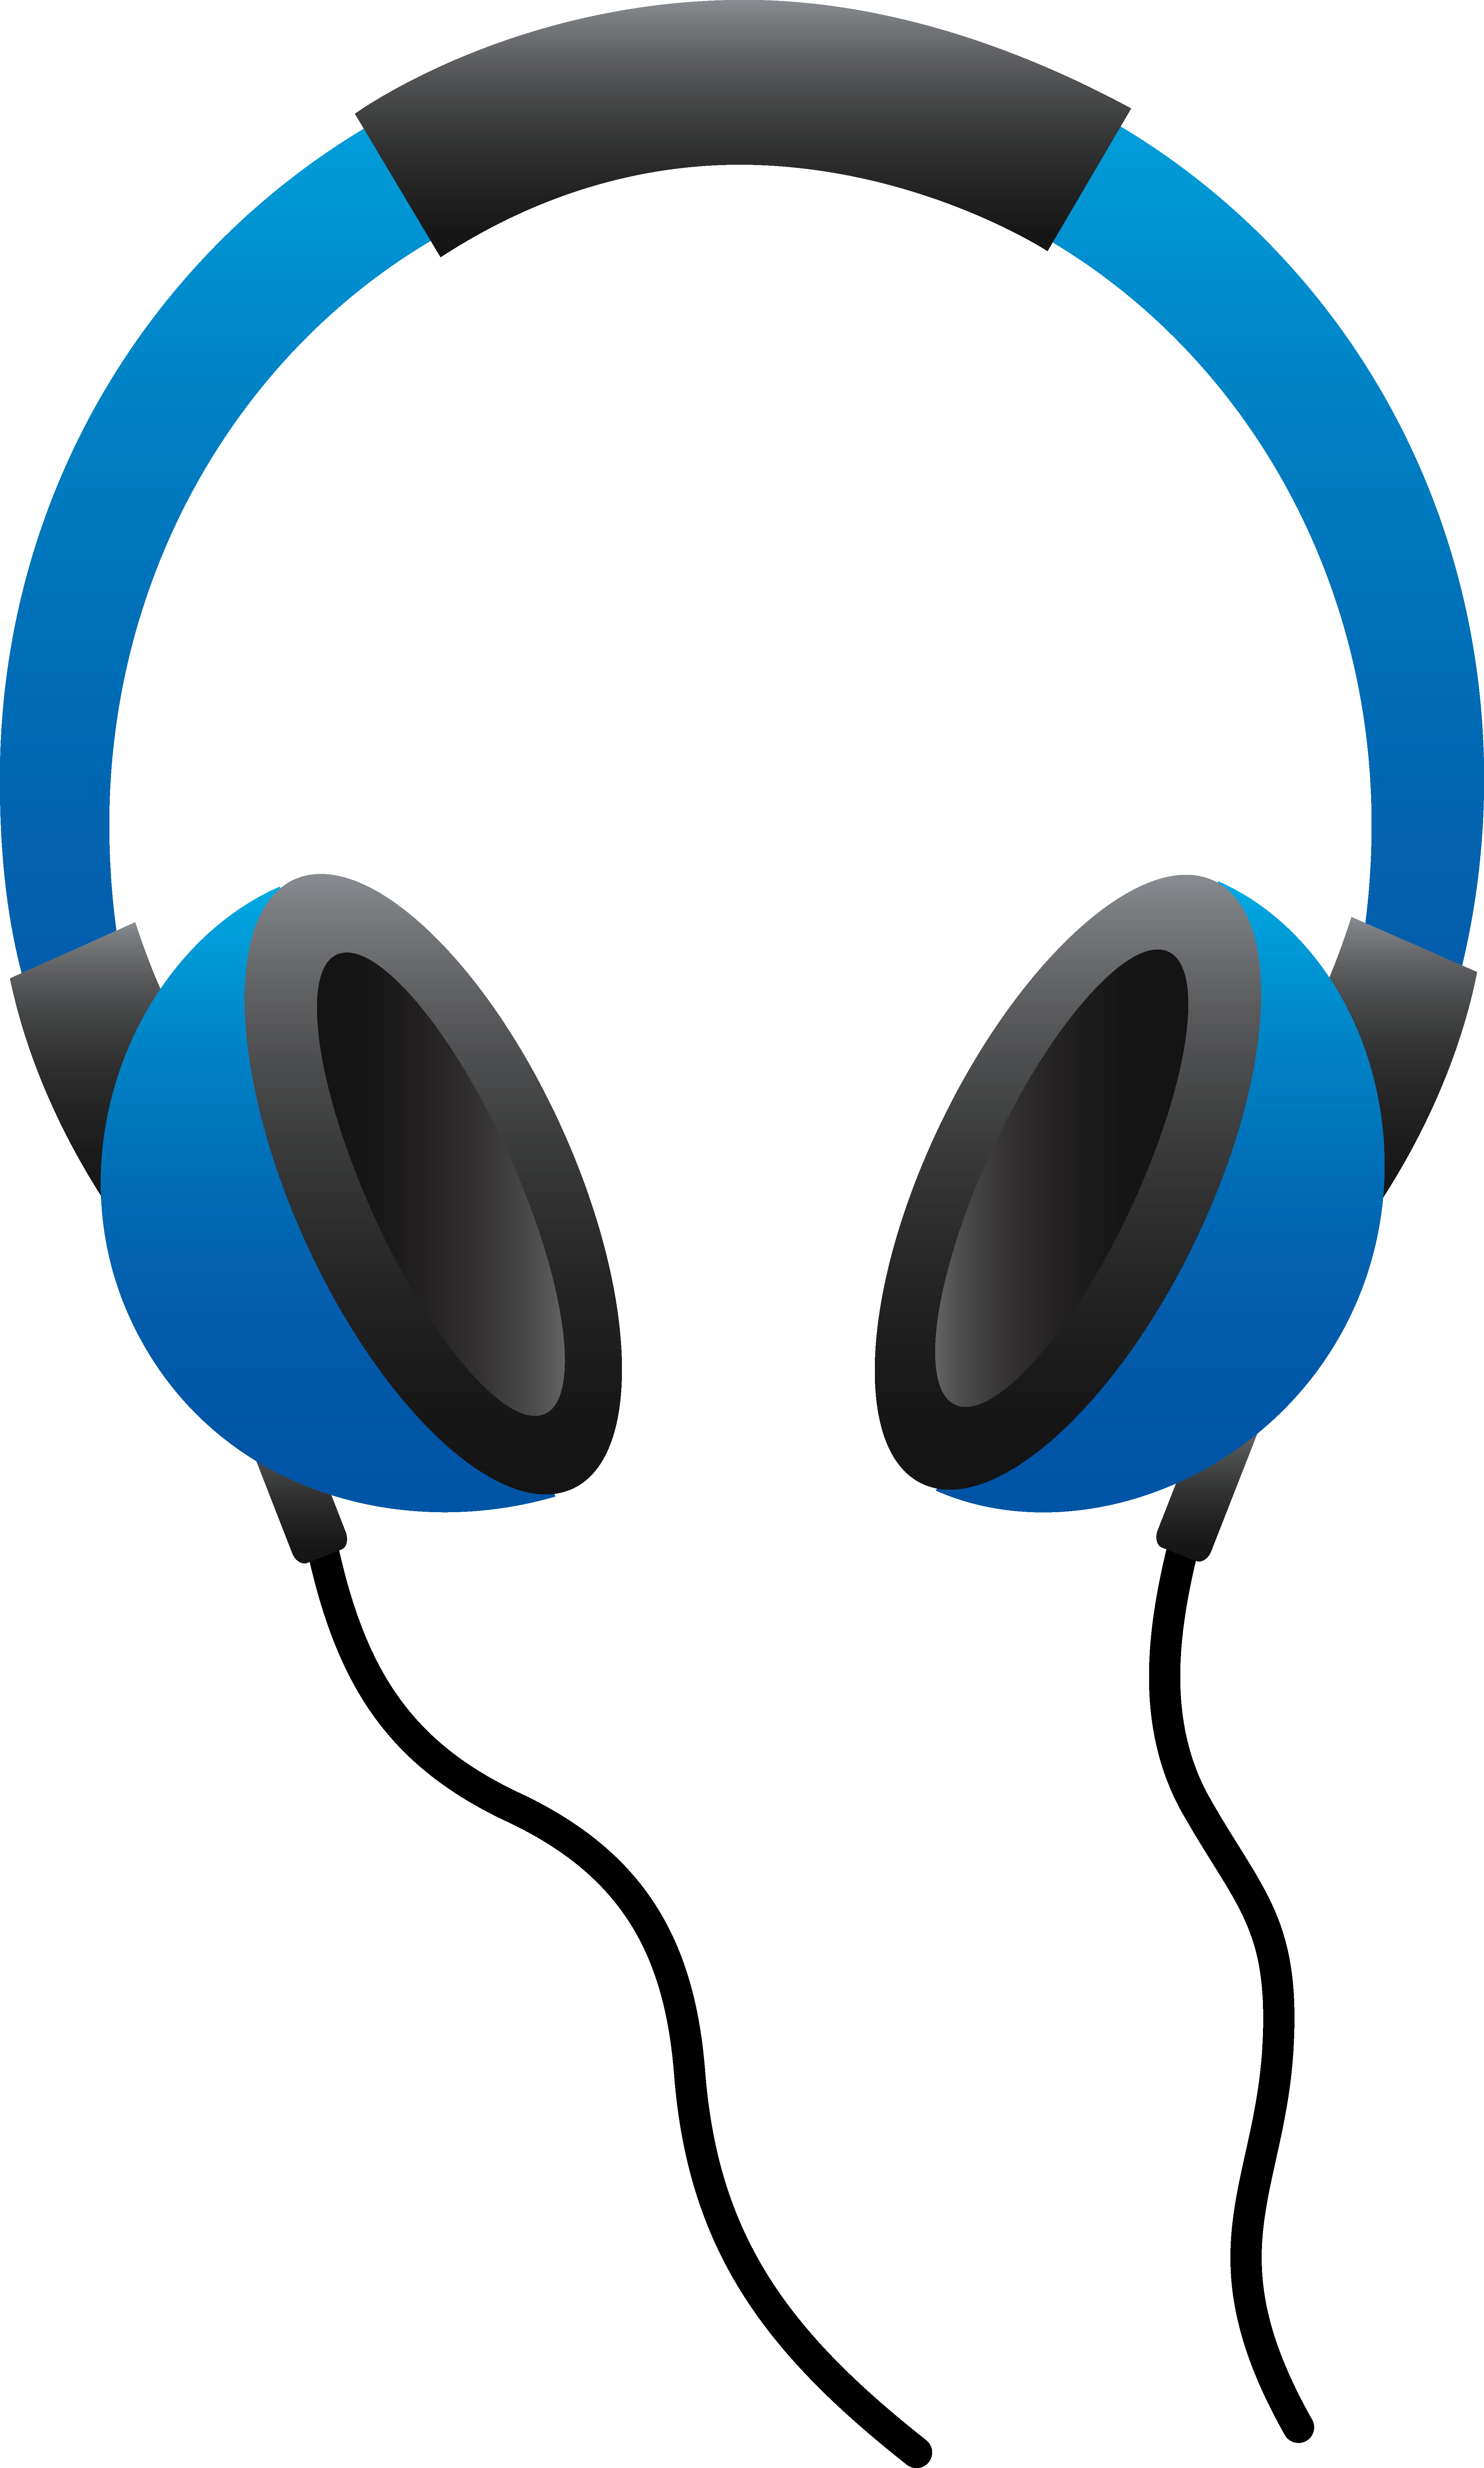 Headset Clipart | Clipart Panda - Free Clipart Images